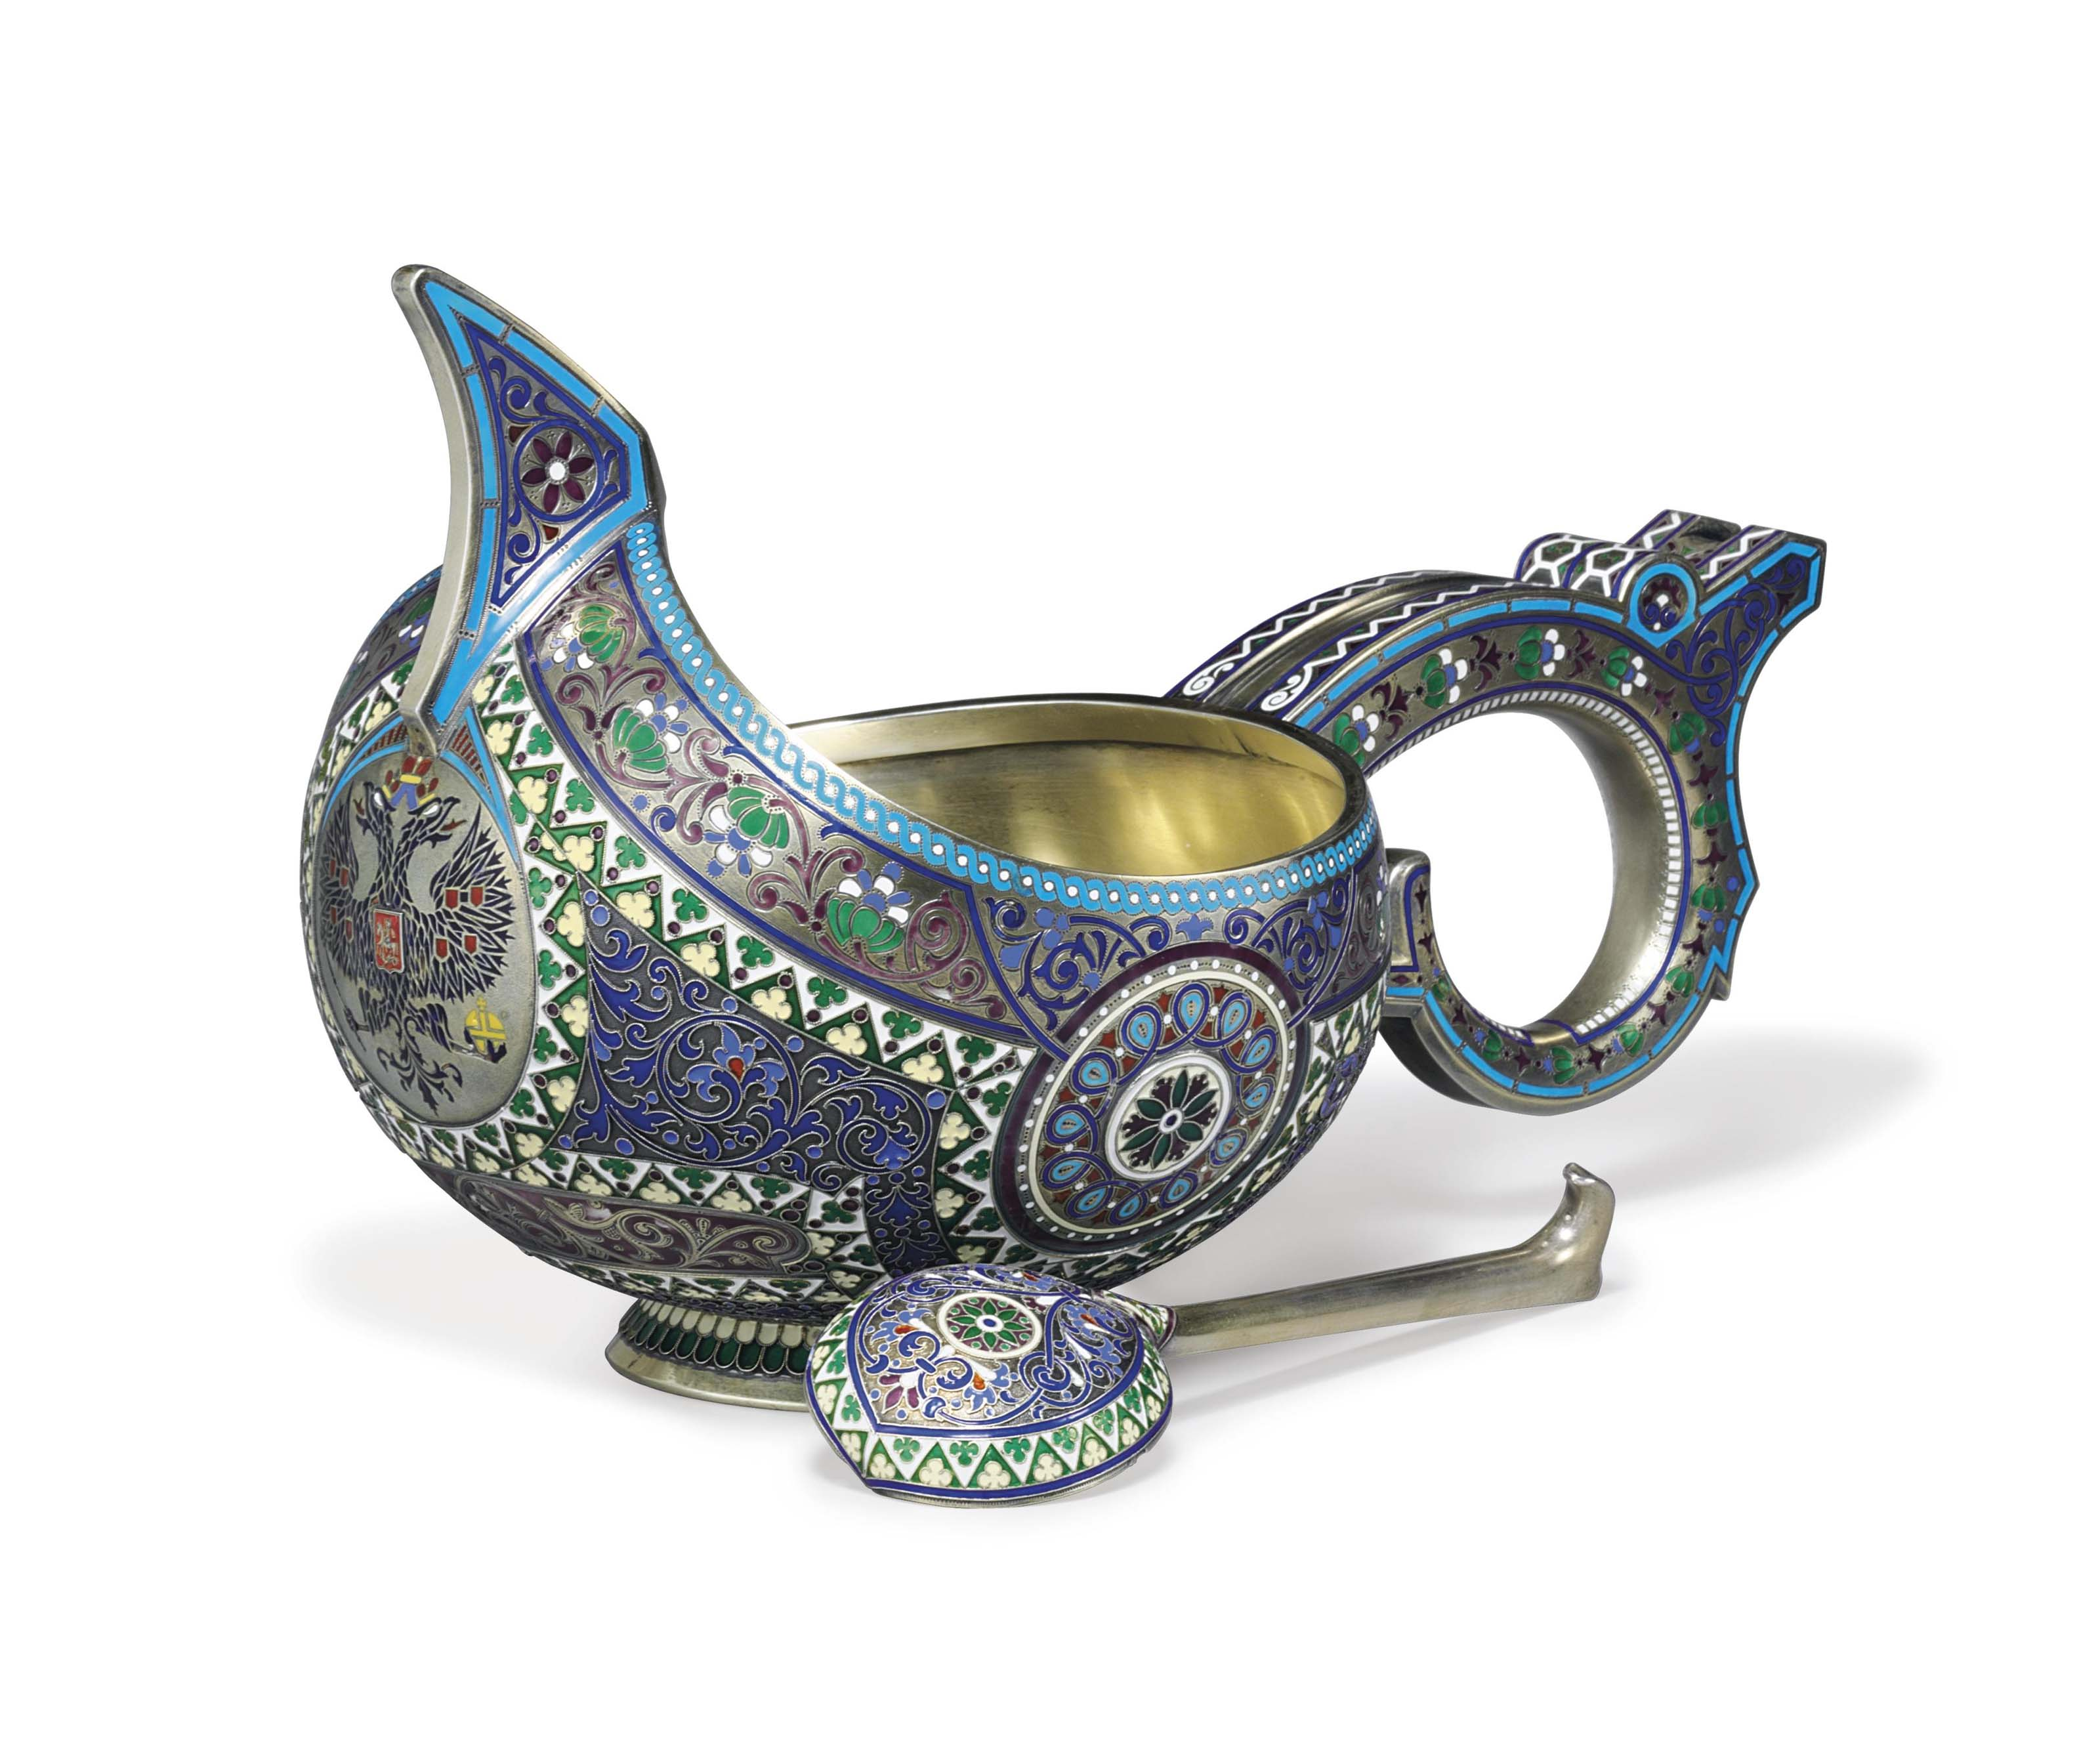 A SILVER-GILT CLOISONNÉ AND CHAMPLEVÉ ENAMEL LARGE KOVSH AND SPOON